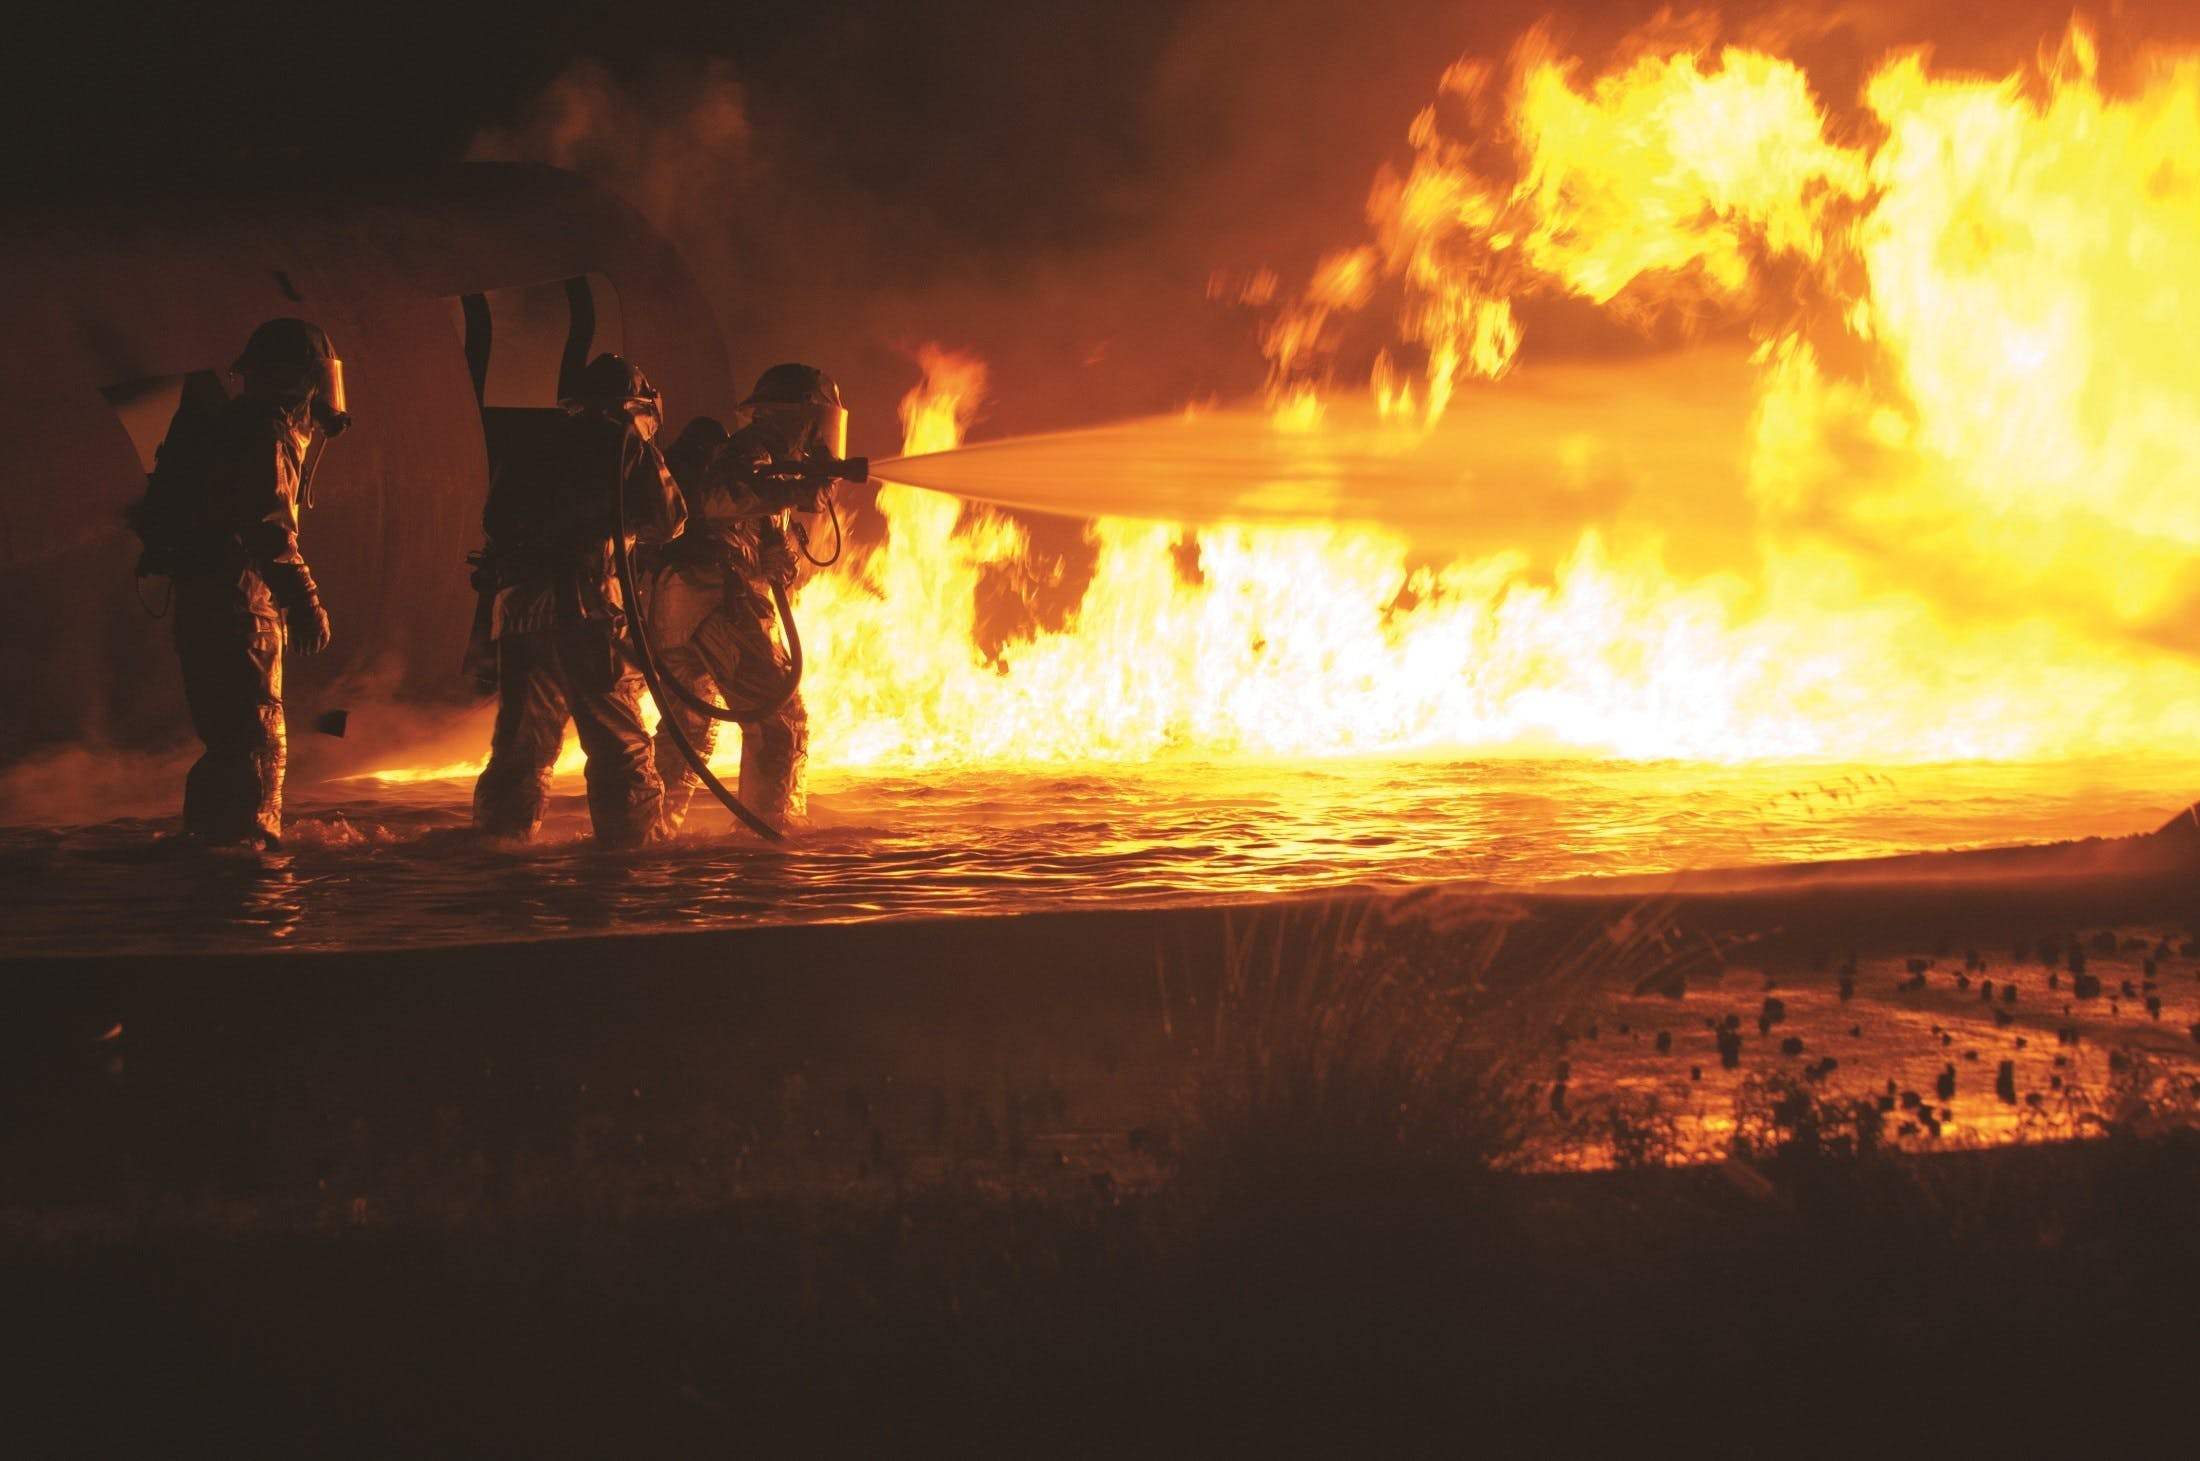 Free stock photo of people, fire, hot, hose